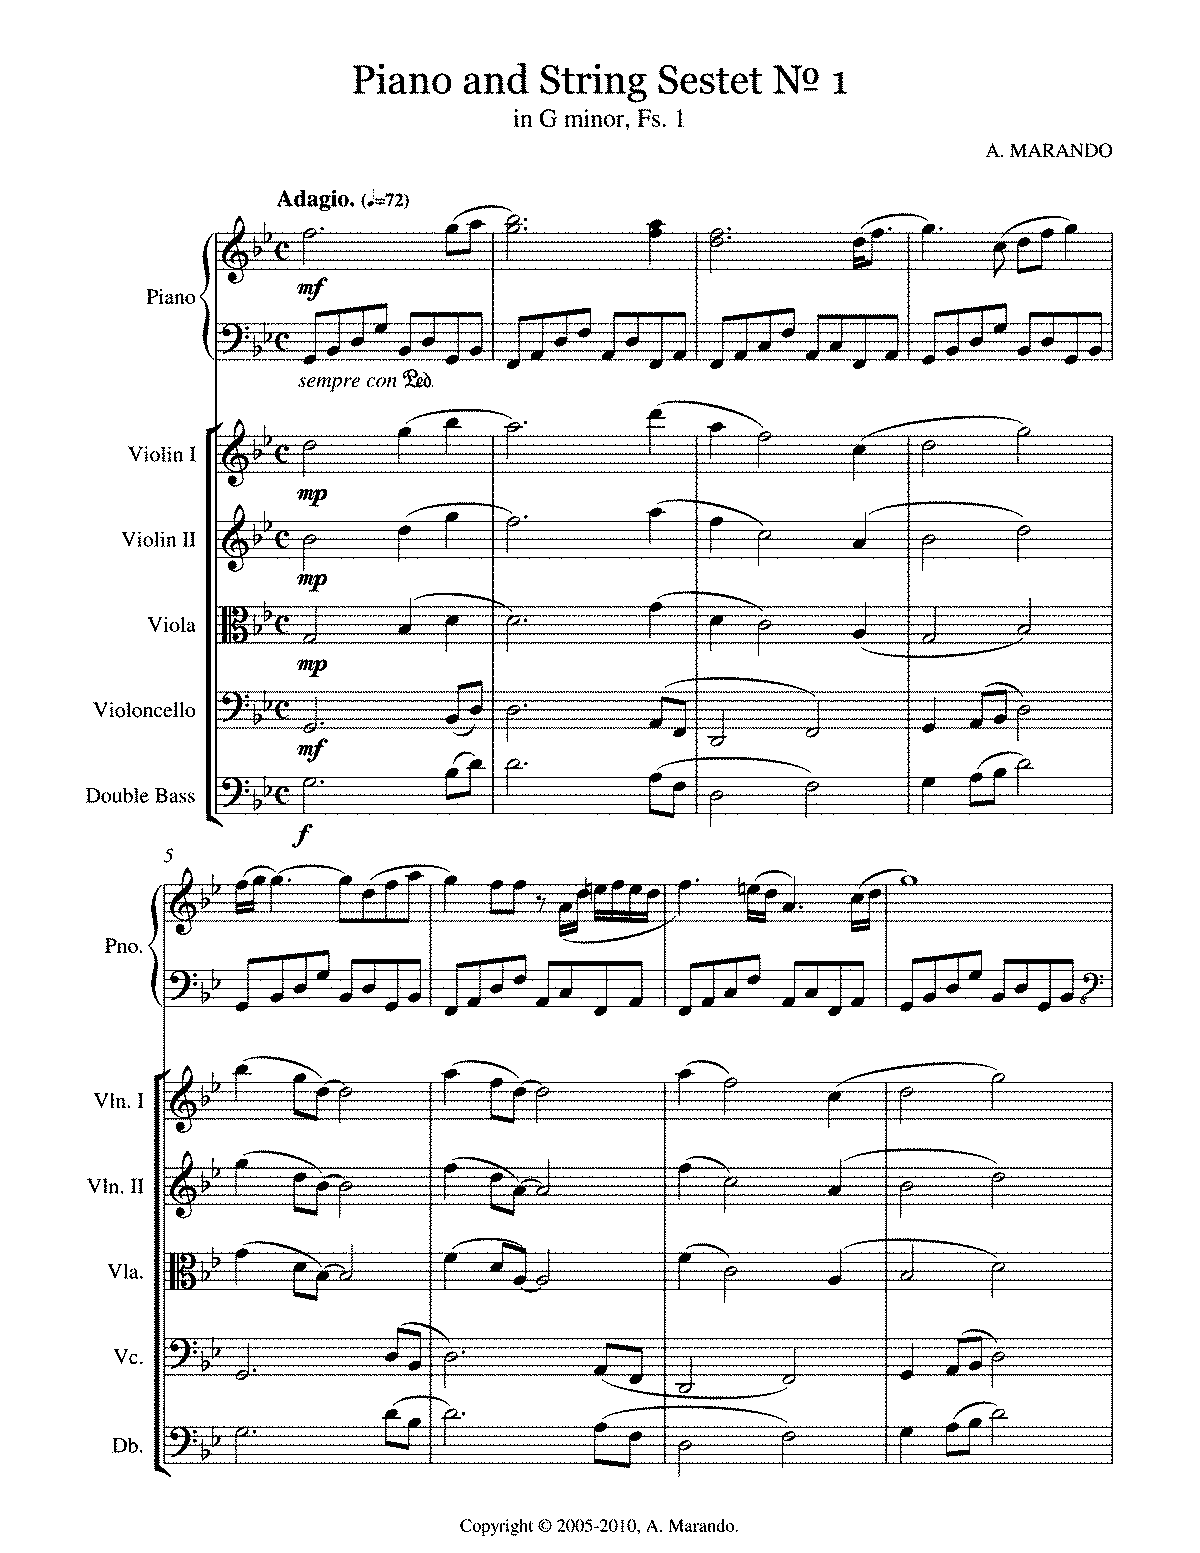 PMLP133395-Fs. 1 - Piano and String Sestet No. 1 in G minor.pdf